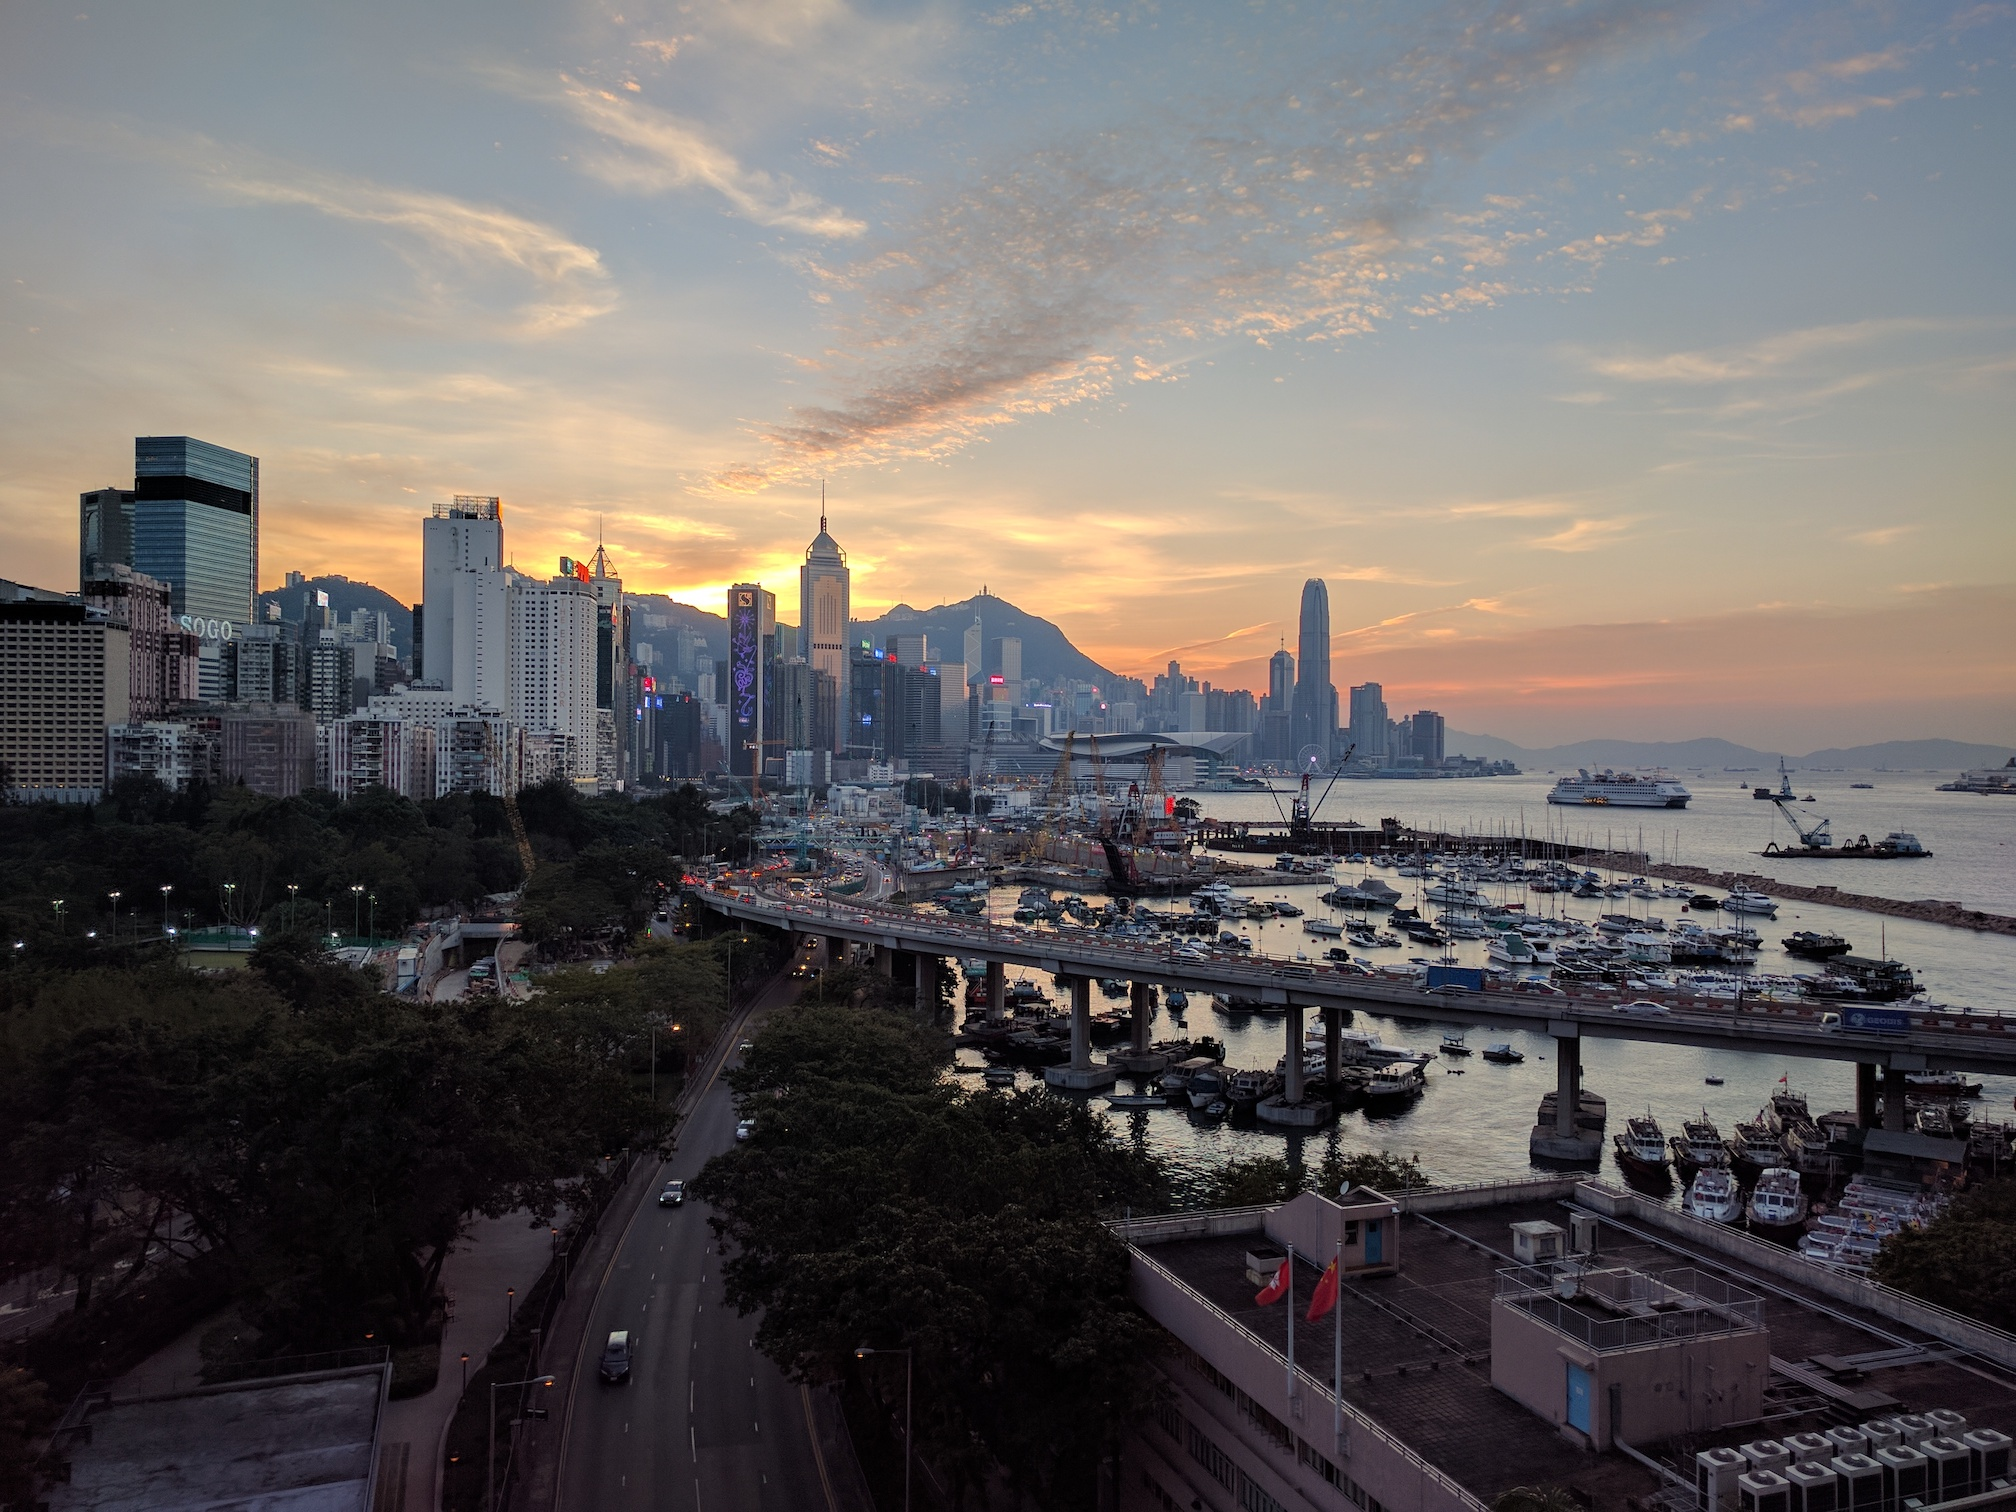 Finishing the day with a beautiful Sunset over Hong Kong Harbour